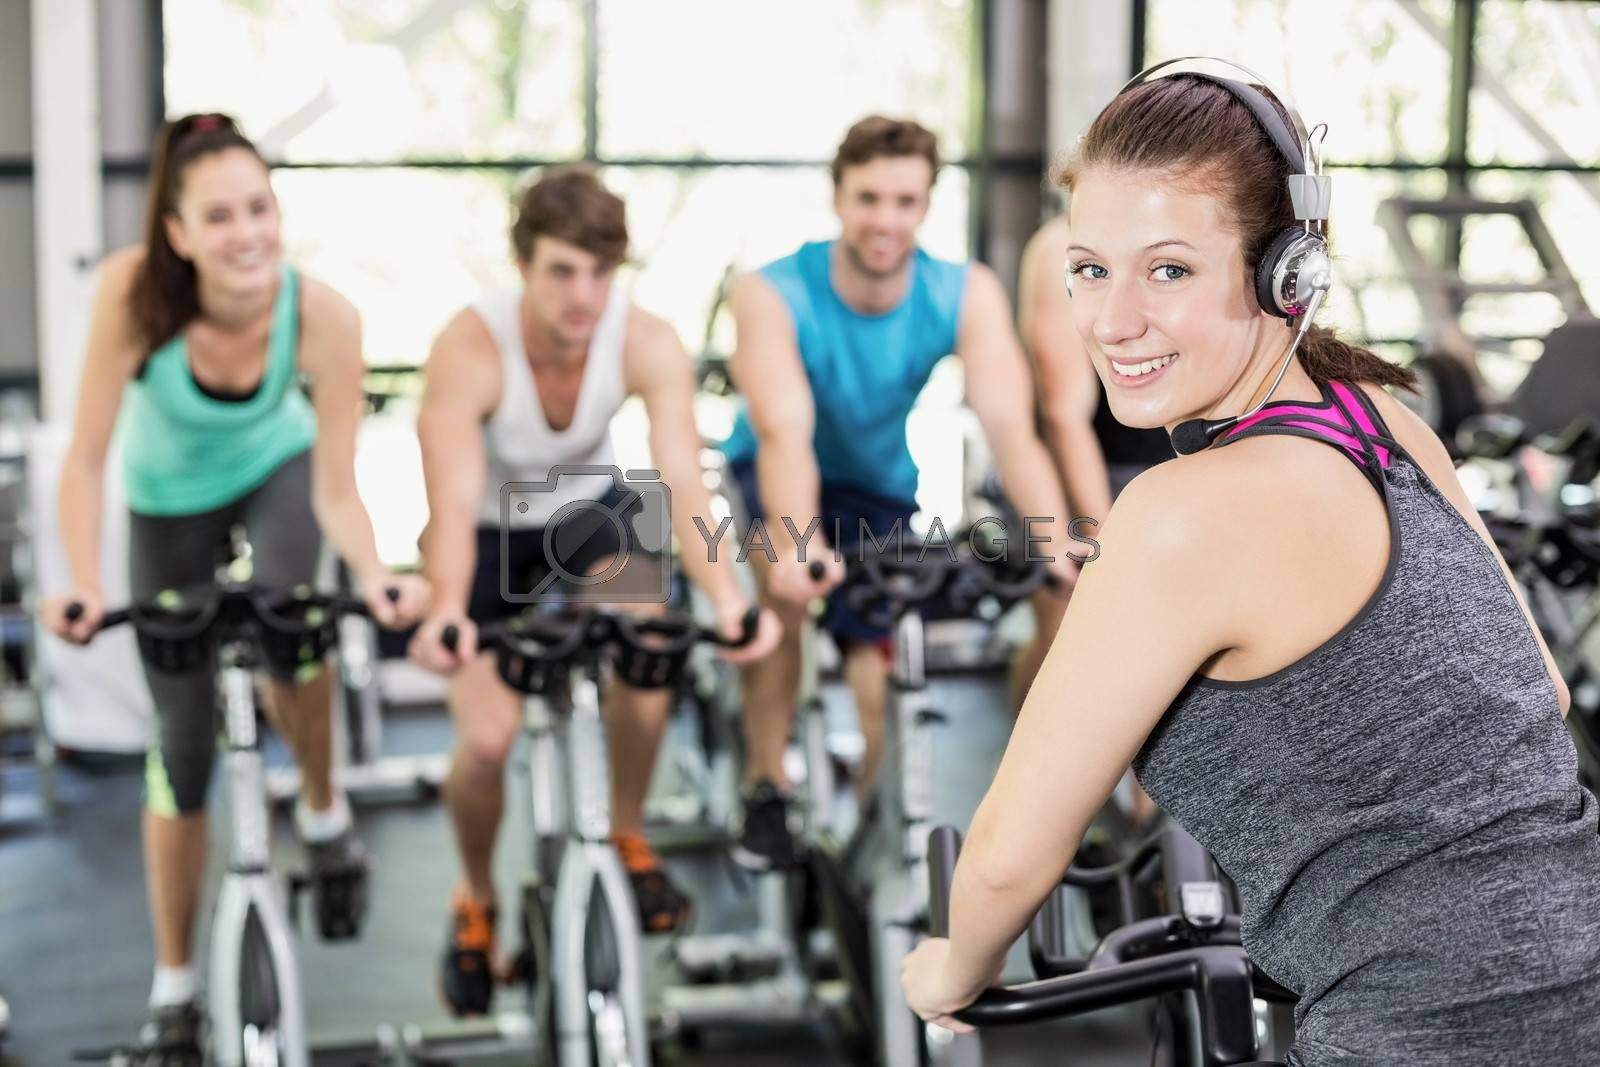 Fit group of people using exercise bike together in crossfit